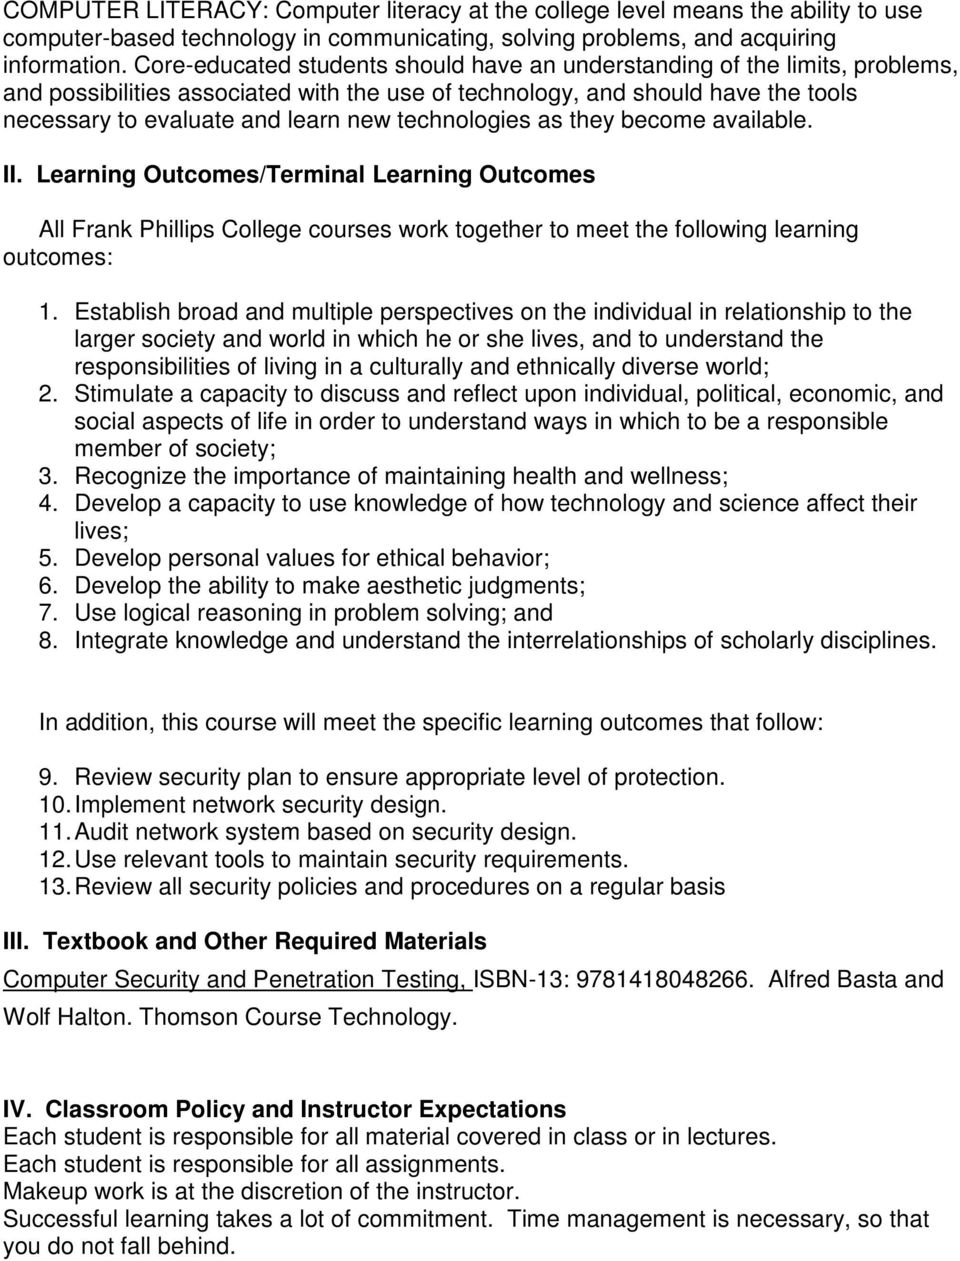 technologies as they become available. II. Learning Outcomes/Terminal Learning Outcomes All Frank Phillips College courses work together to meet the following learning outcomes: 1.